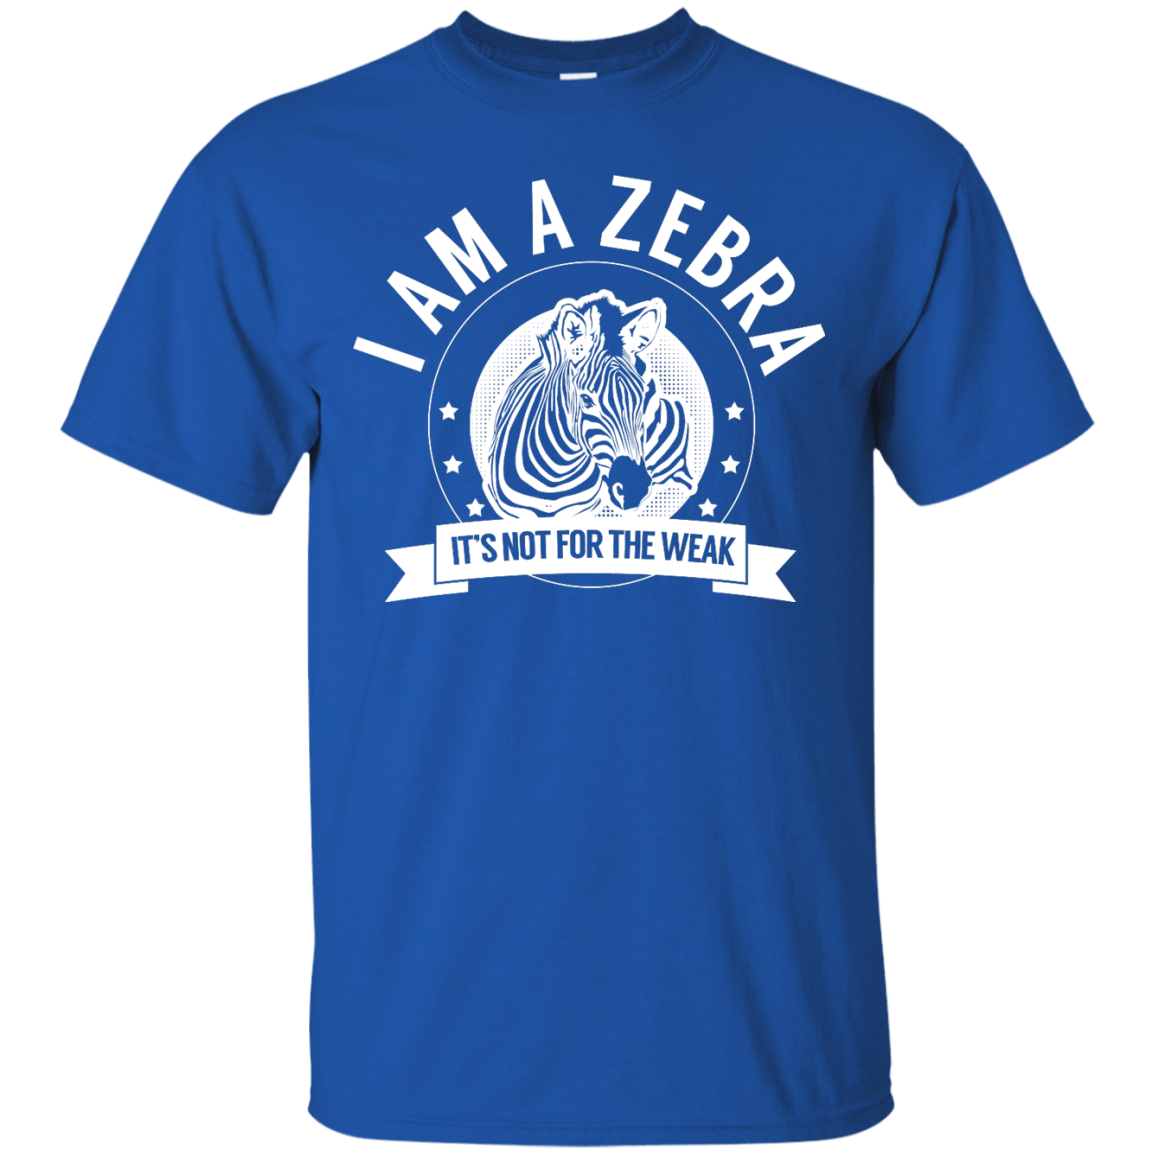 Zebra Warrior Not for the Weak Unisex Shirt - The Unchargeables